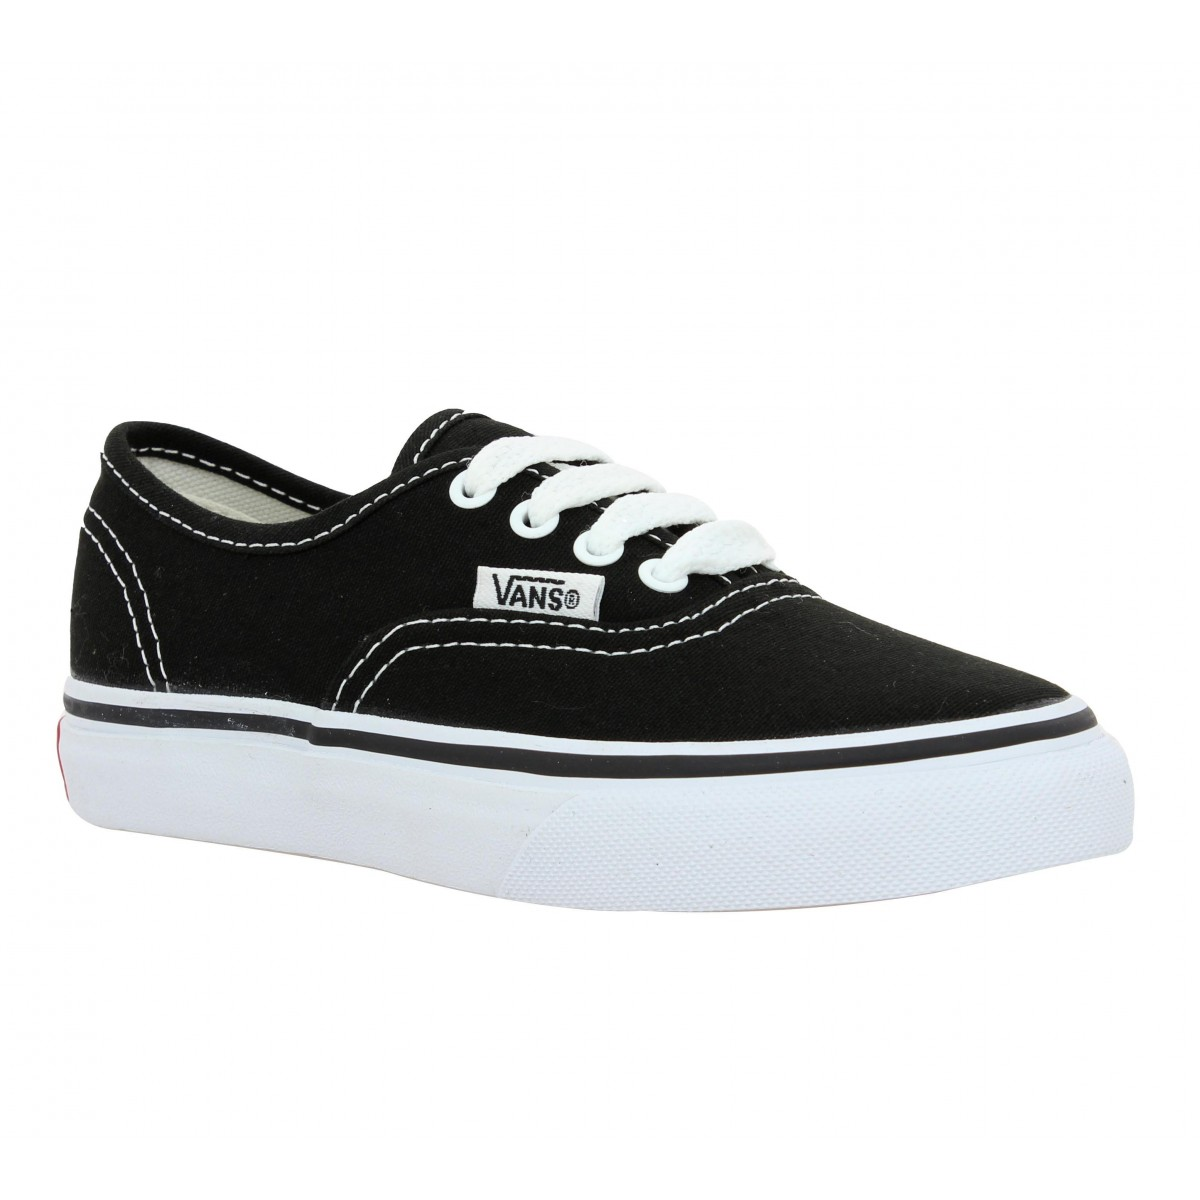 Baskets VANS Authentic toile Enfant Noir